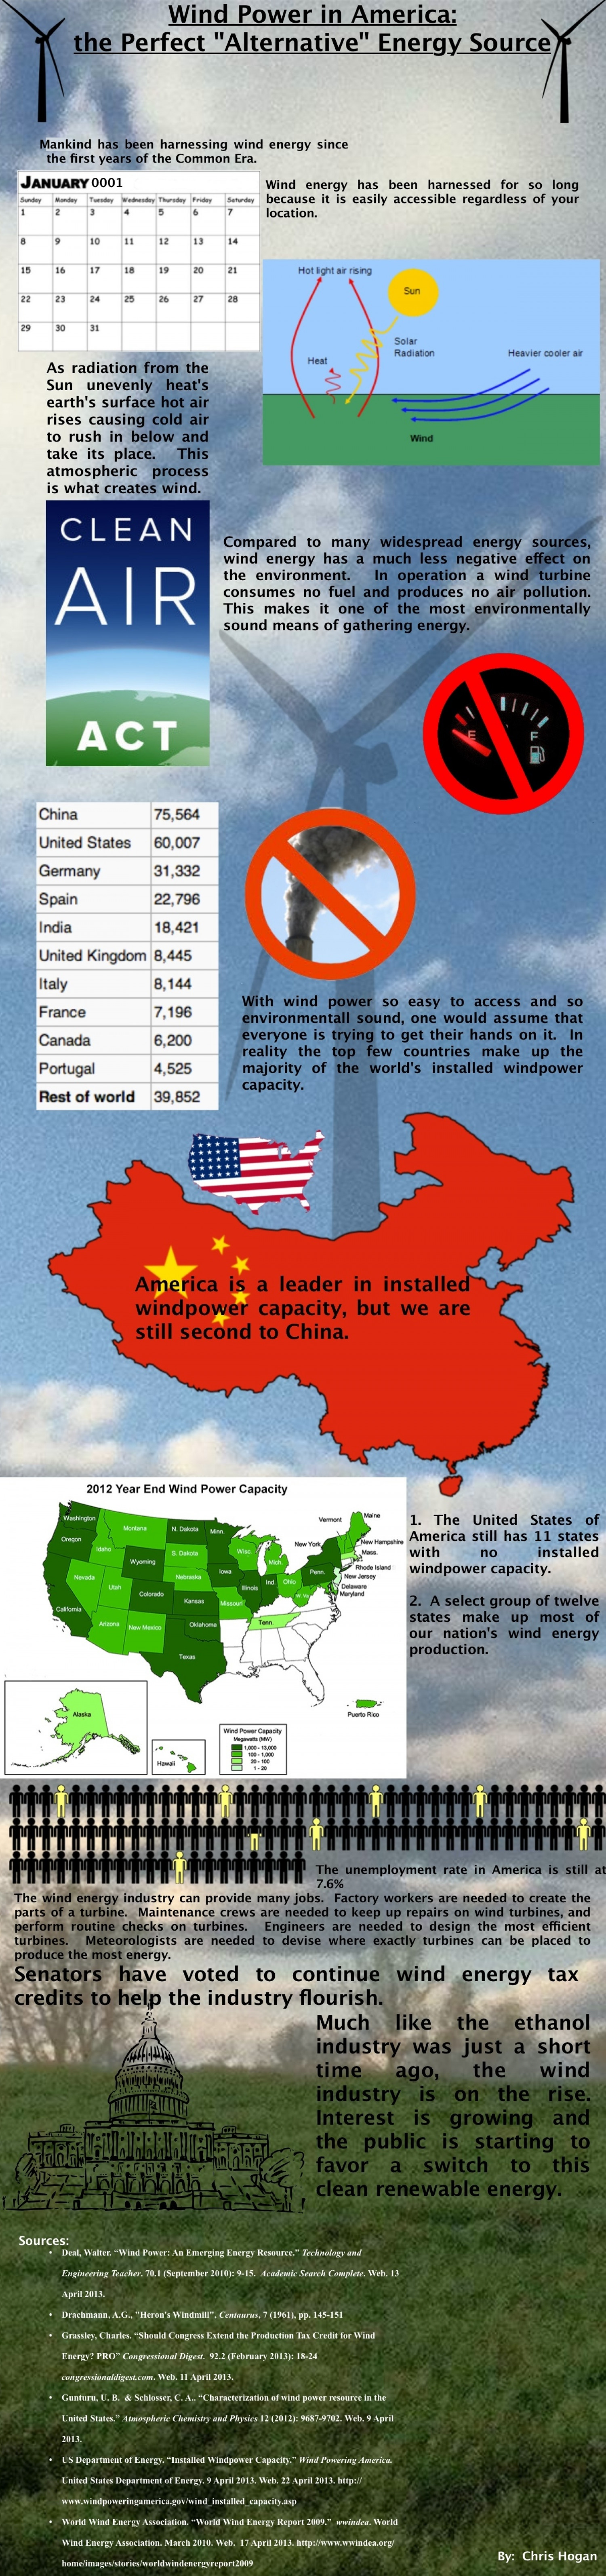 "Wind Power in America: the Perfect ""Alternative Energy Source Infographic"